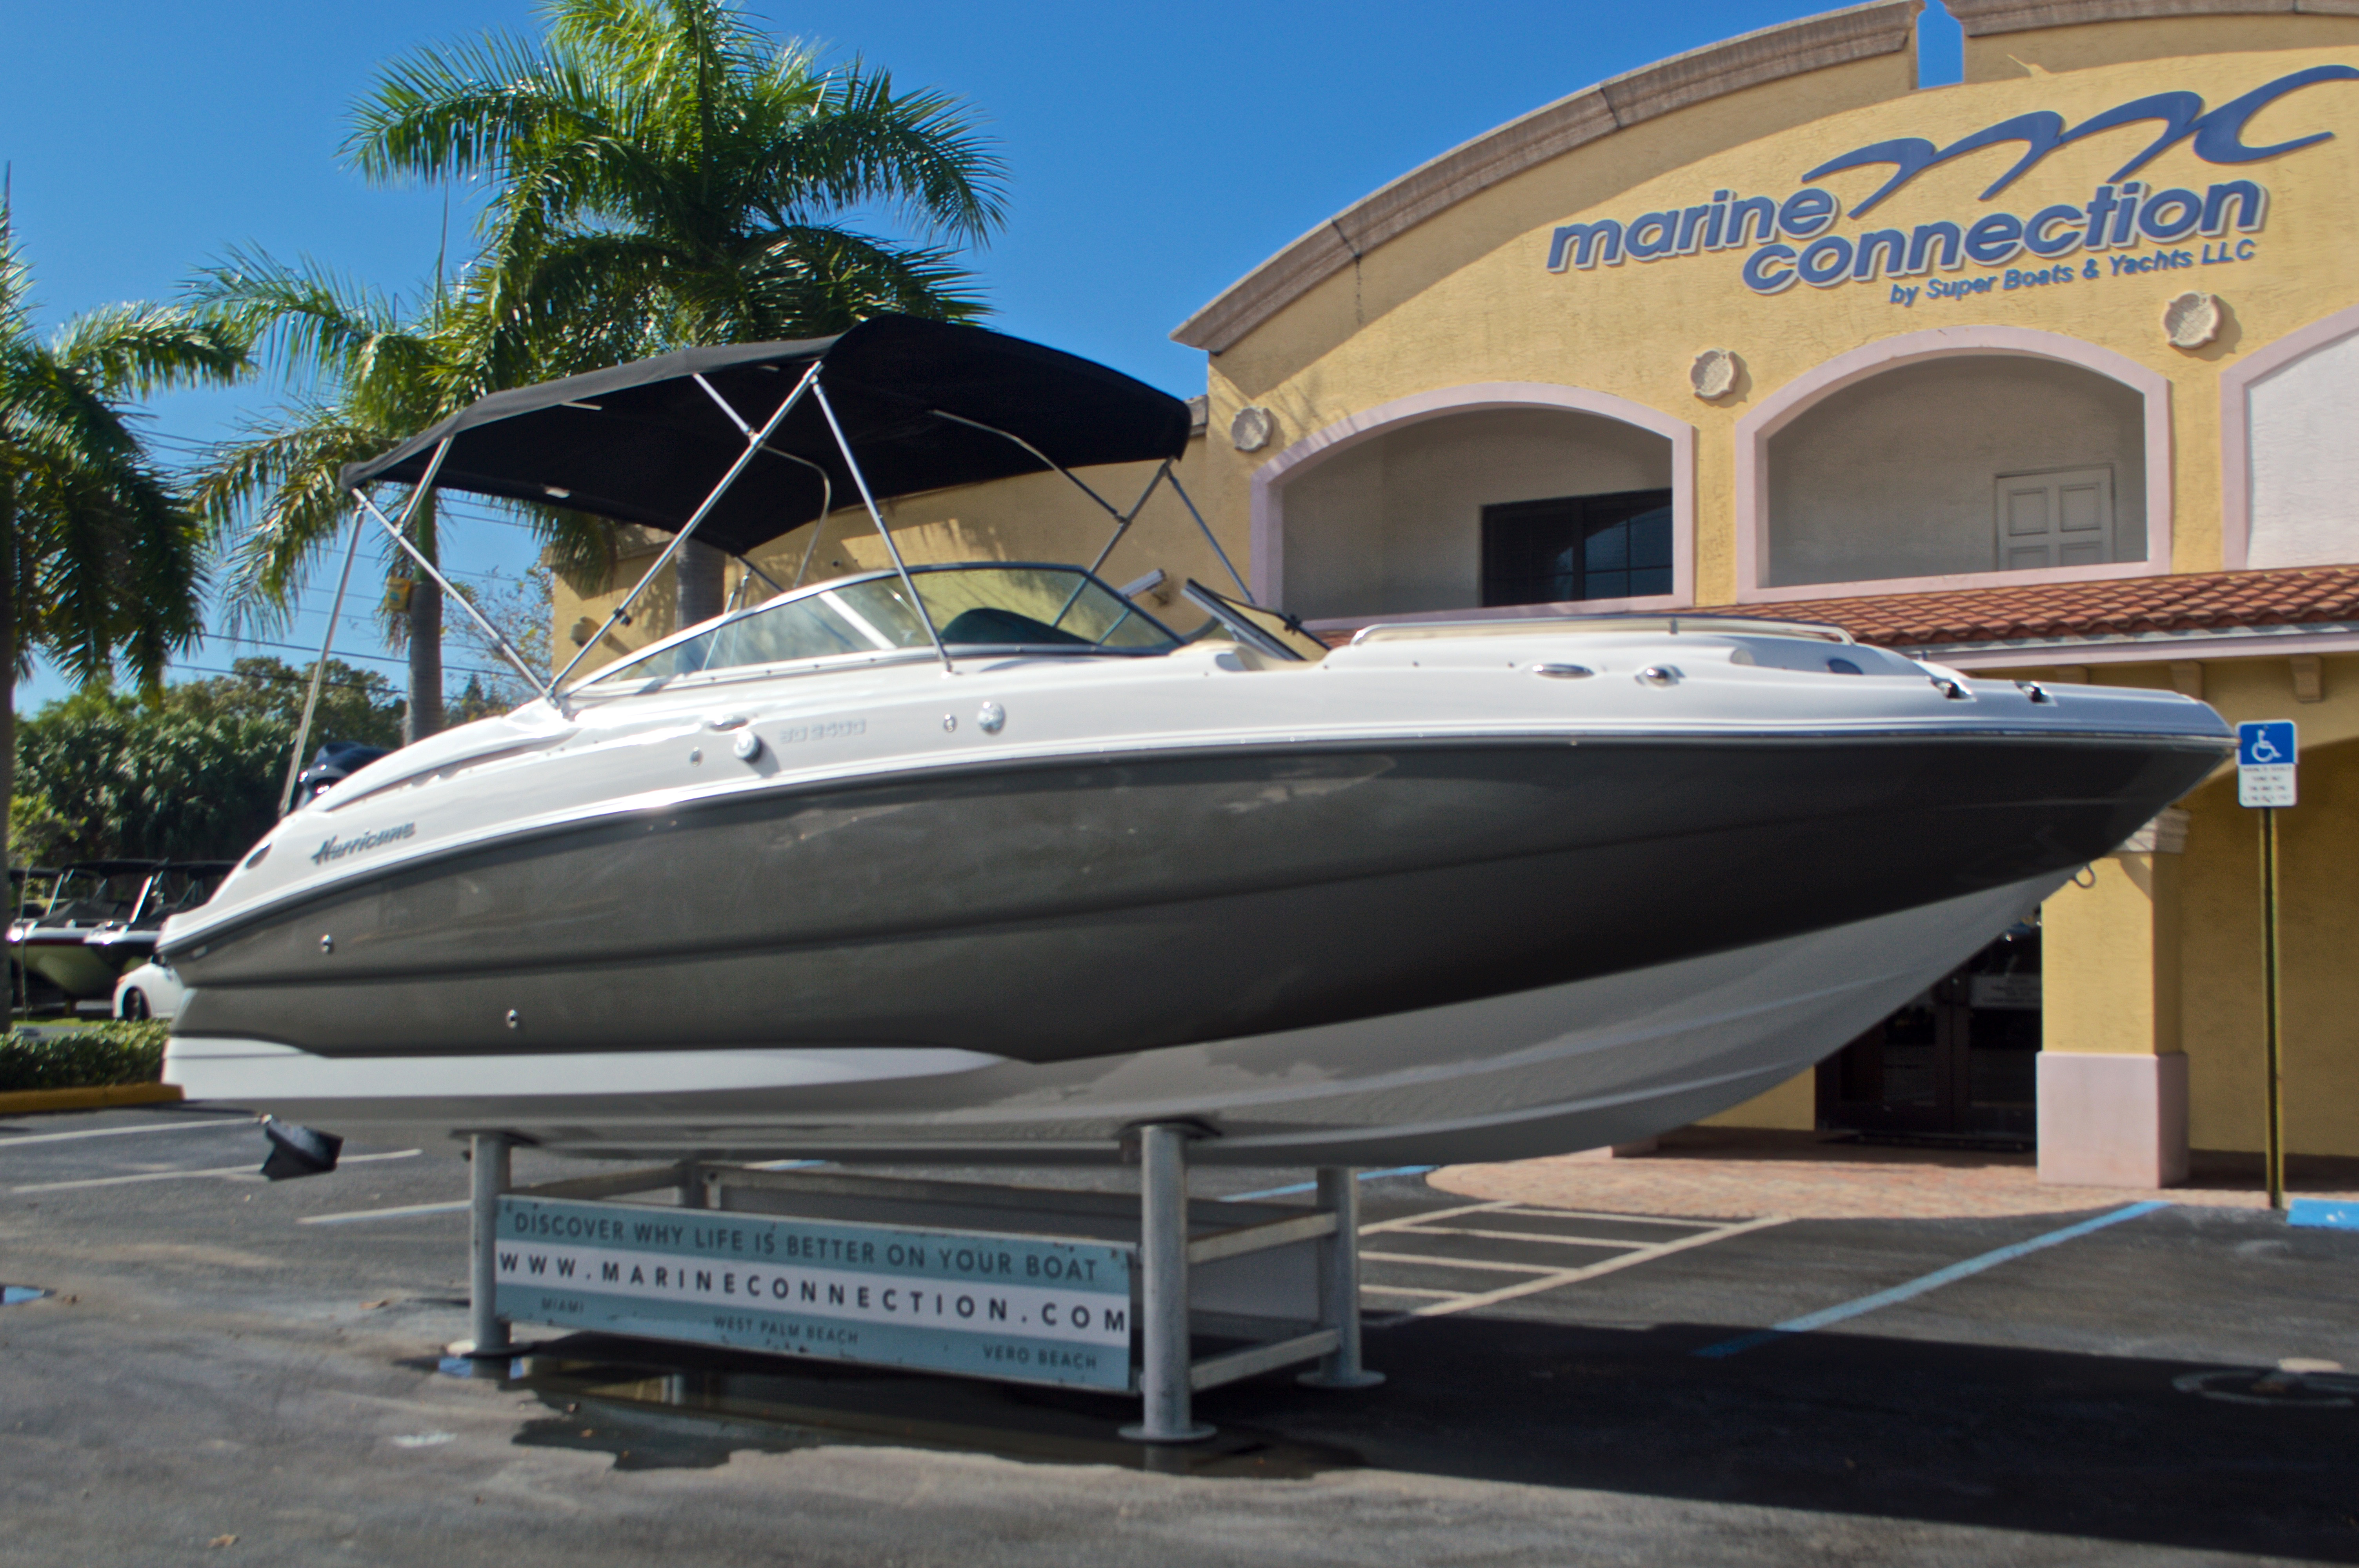 Thumbnail 1 for New 2017 Hurricane SunDeck SD 2400 OB boat for sale in West Palm Beach, FL